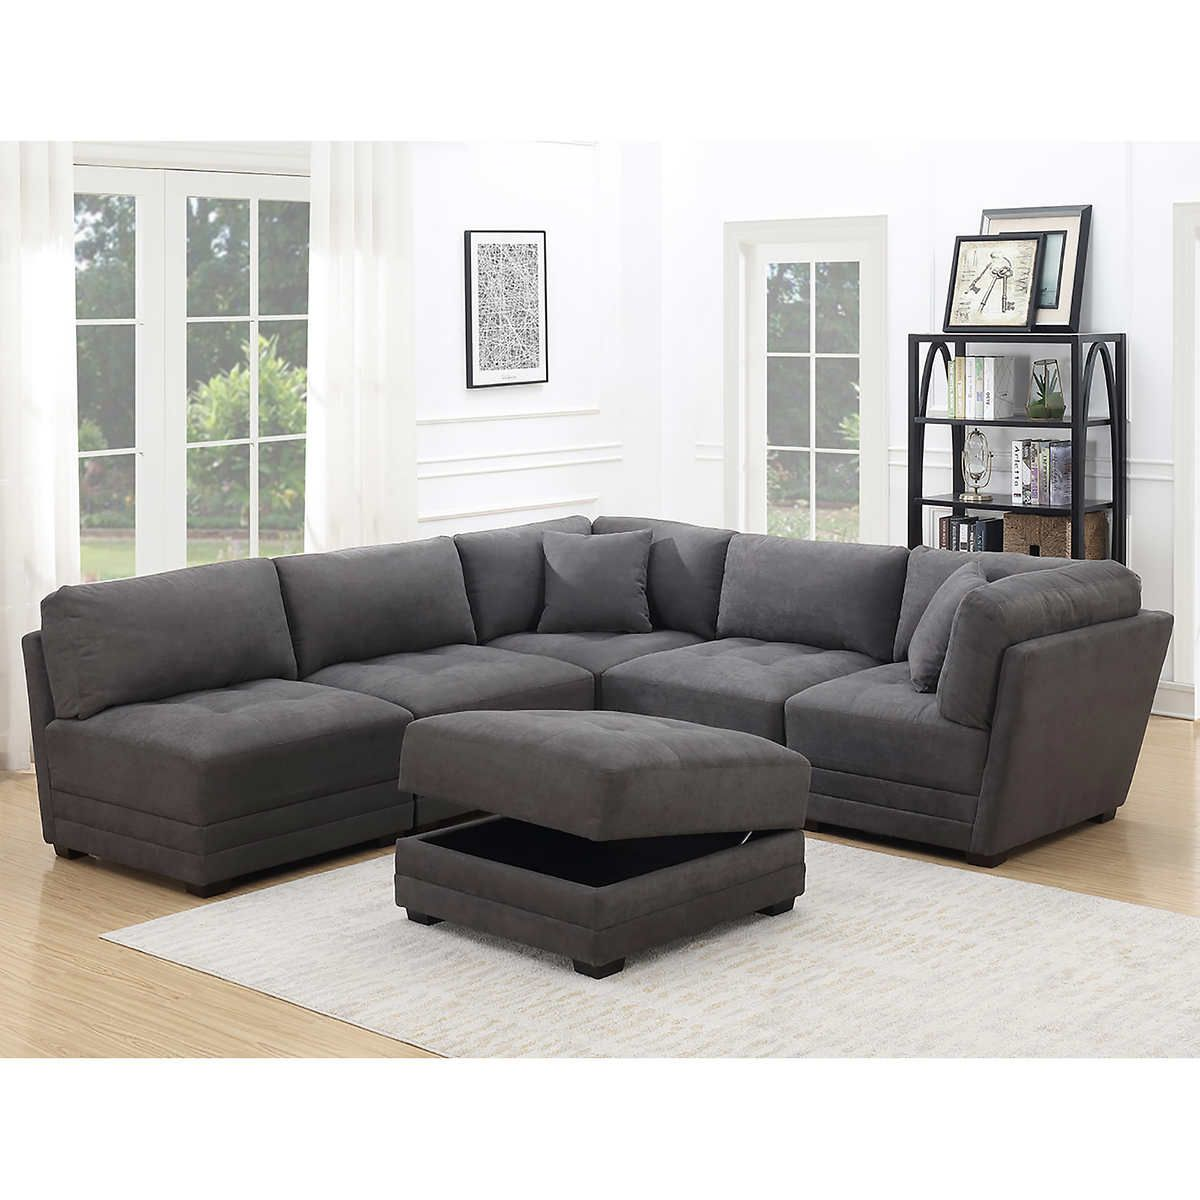 Pin By Nikki Stone On Apartment Furniture Modular Sectional